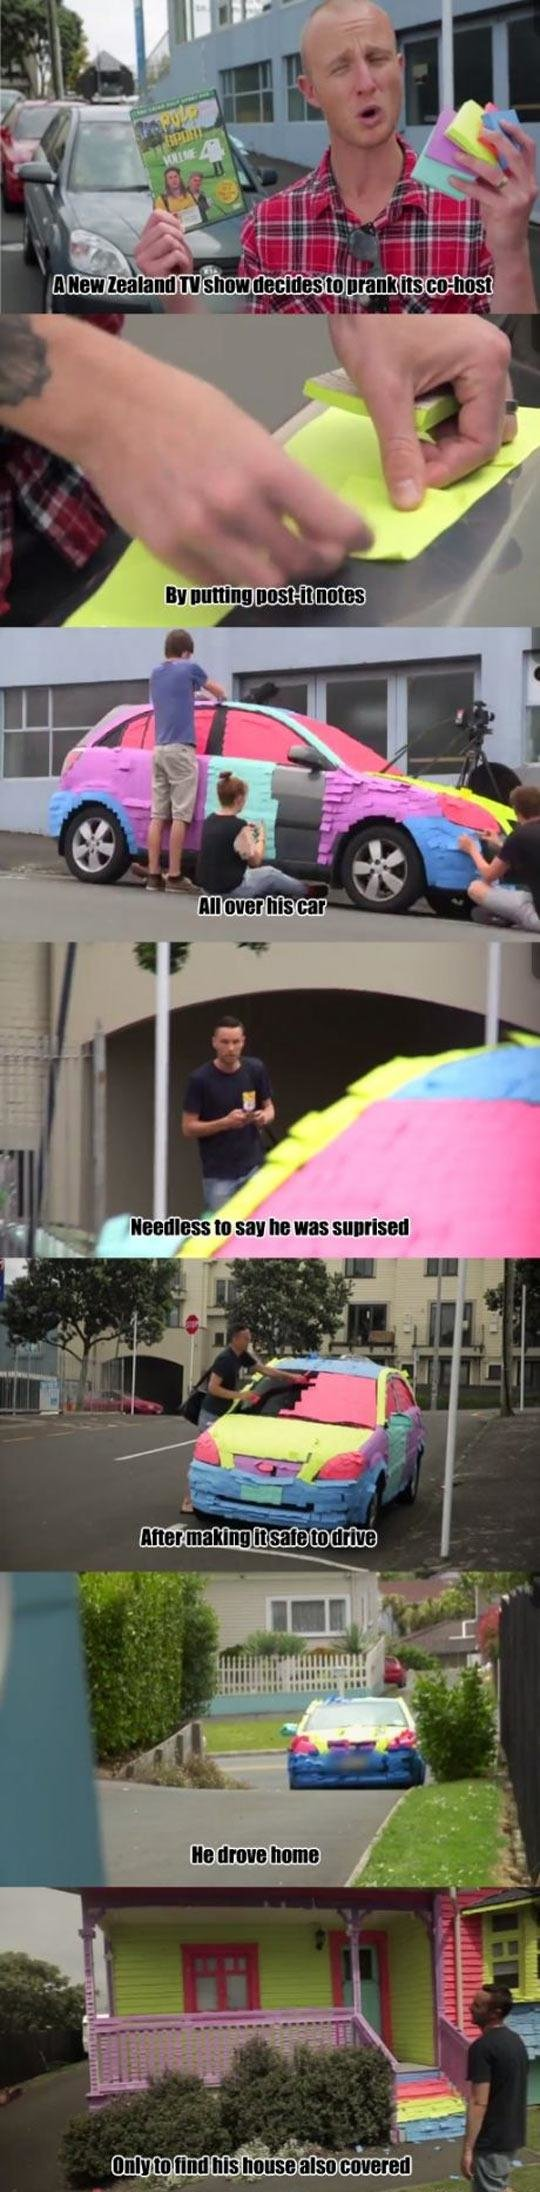 Sticky Situation. source: imgur. I tht lift' M I In